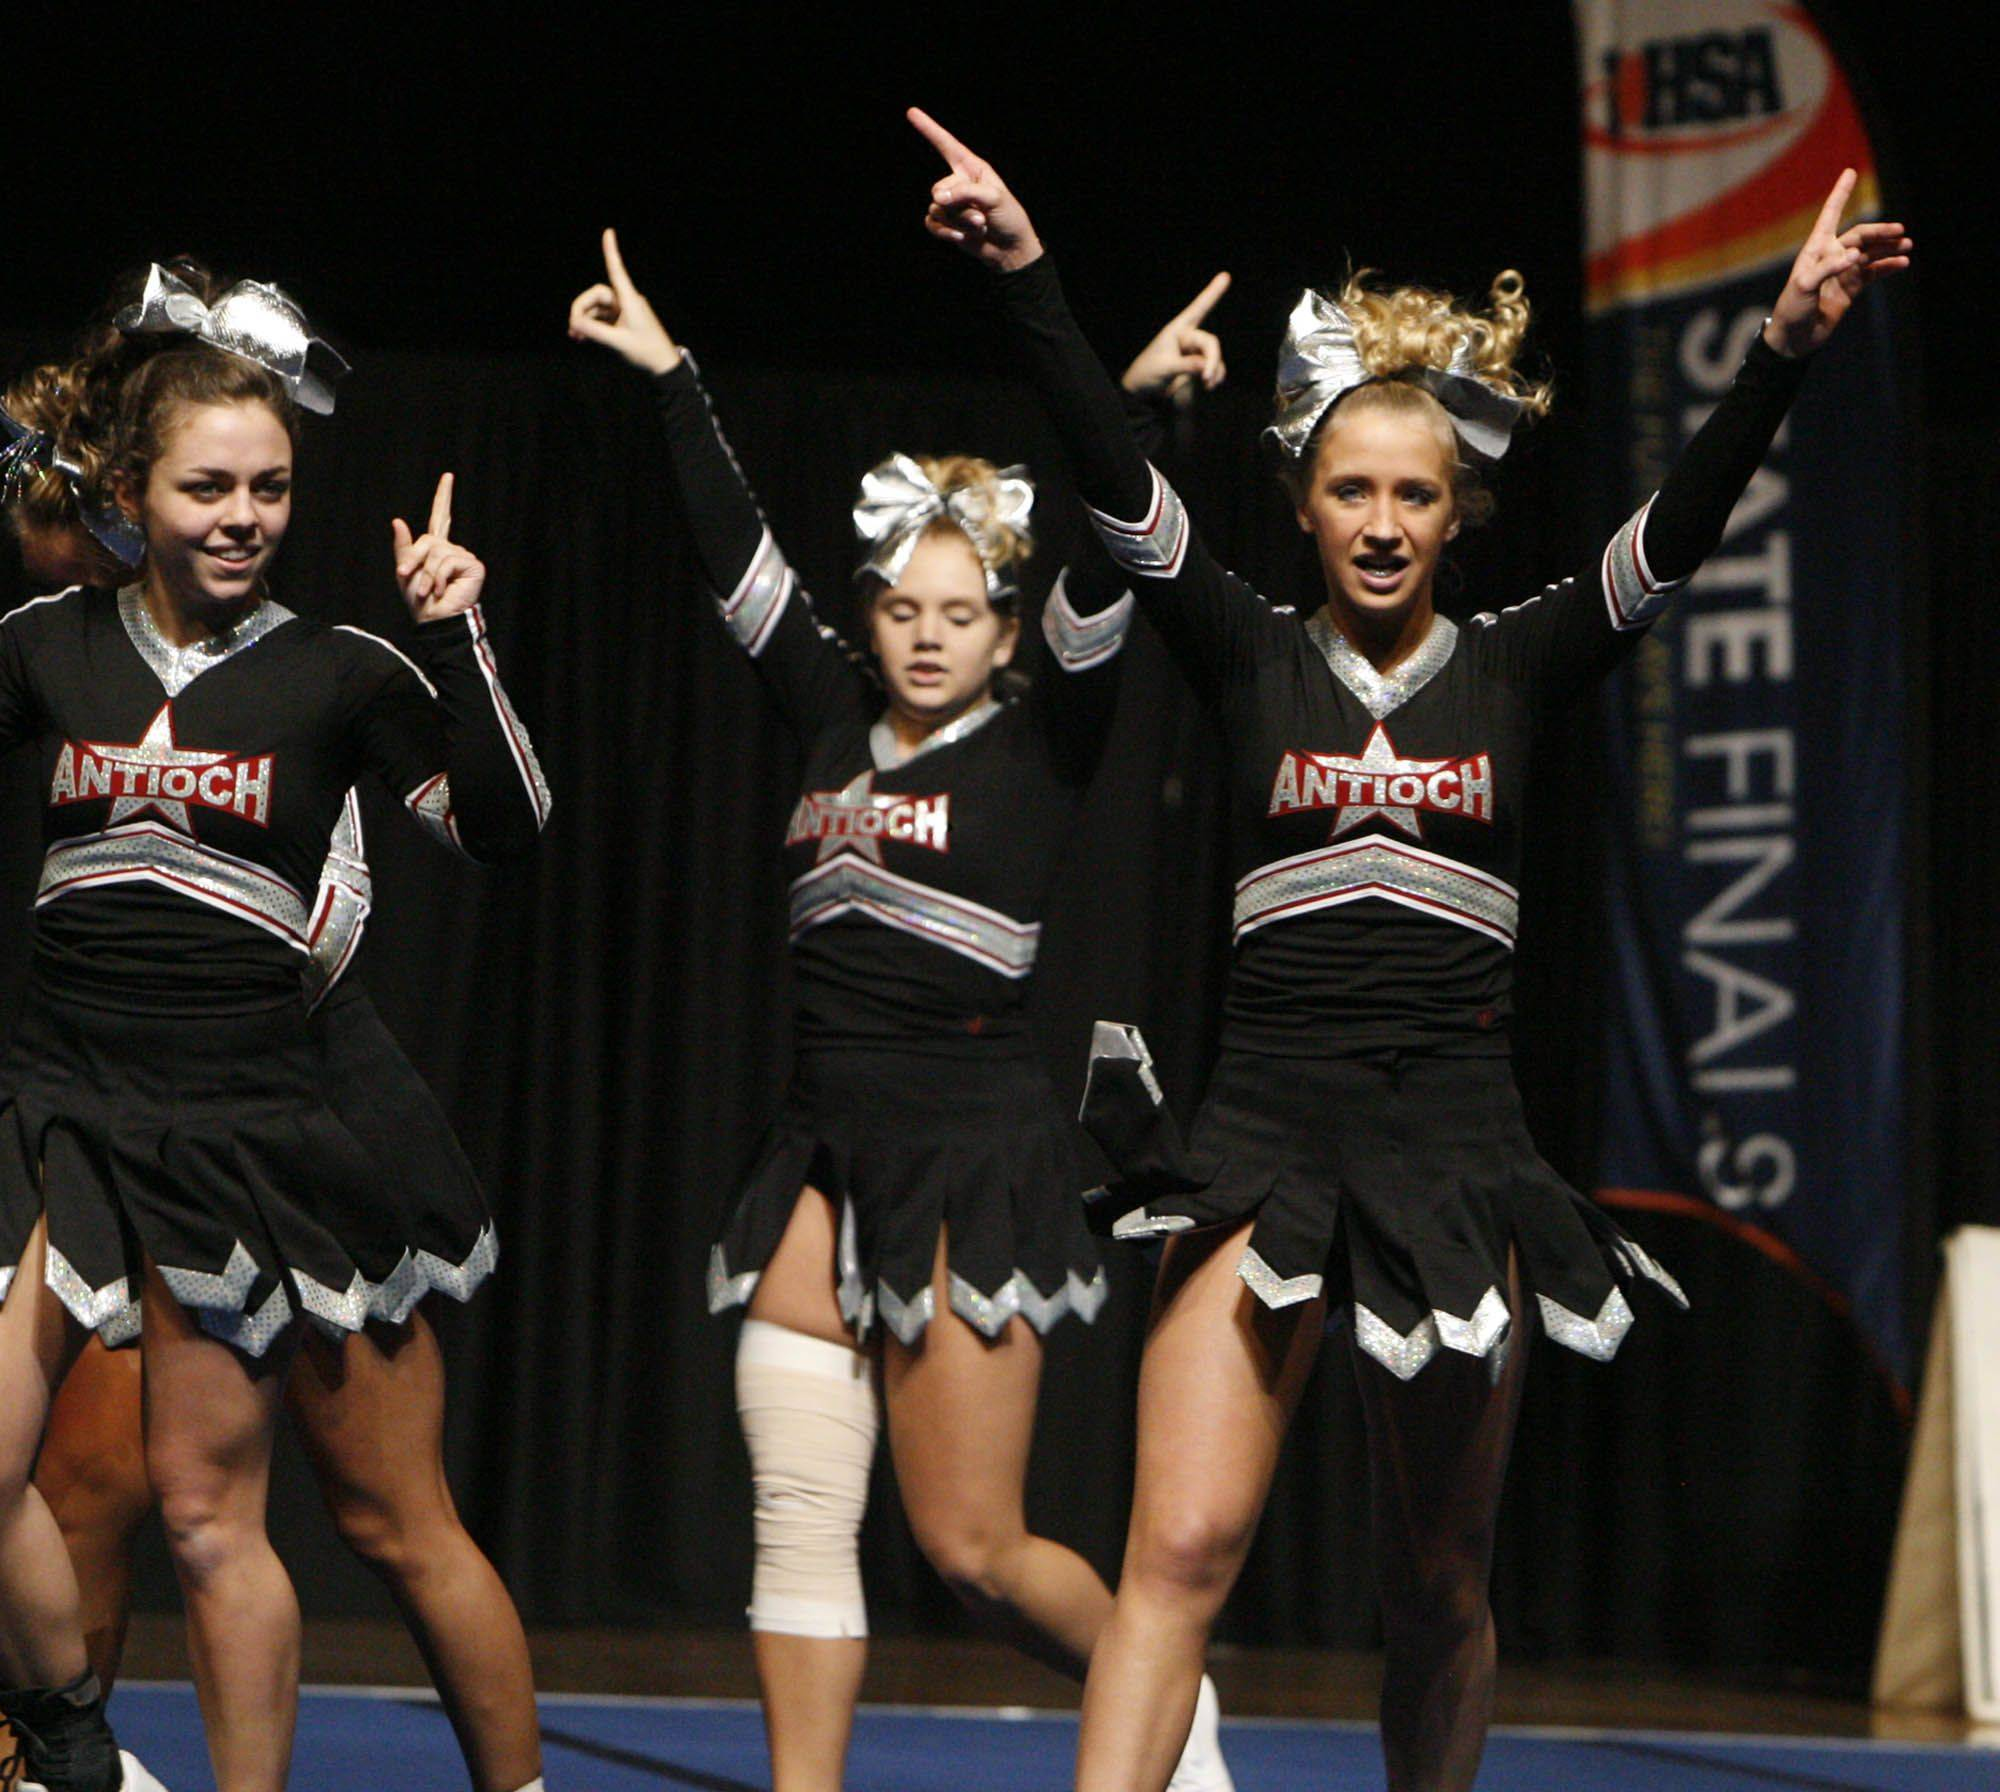 Antioch leaves the floor after competing in the medium team category at IHSA cheerleading state finals at U.S. Cellular Coliseum in Bloomington on Saturday, February 4th.